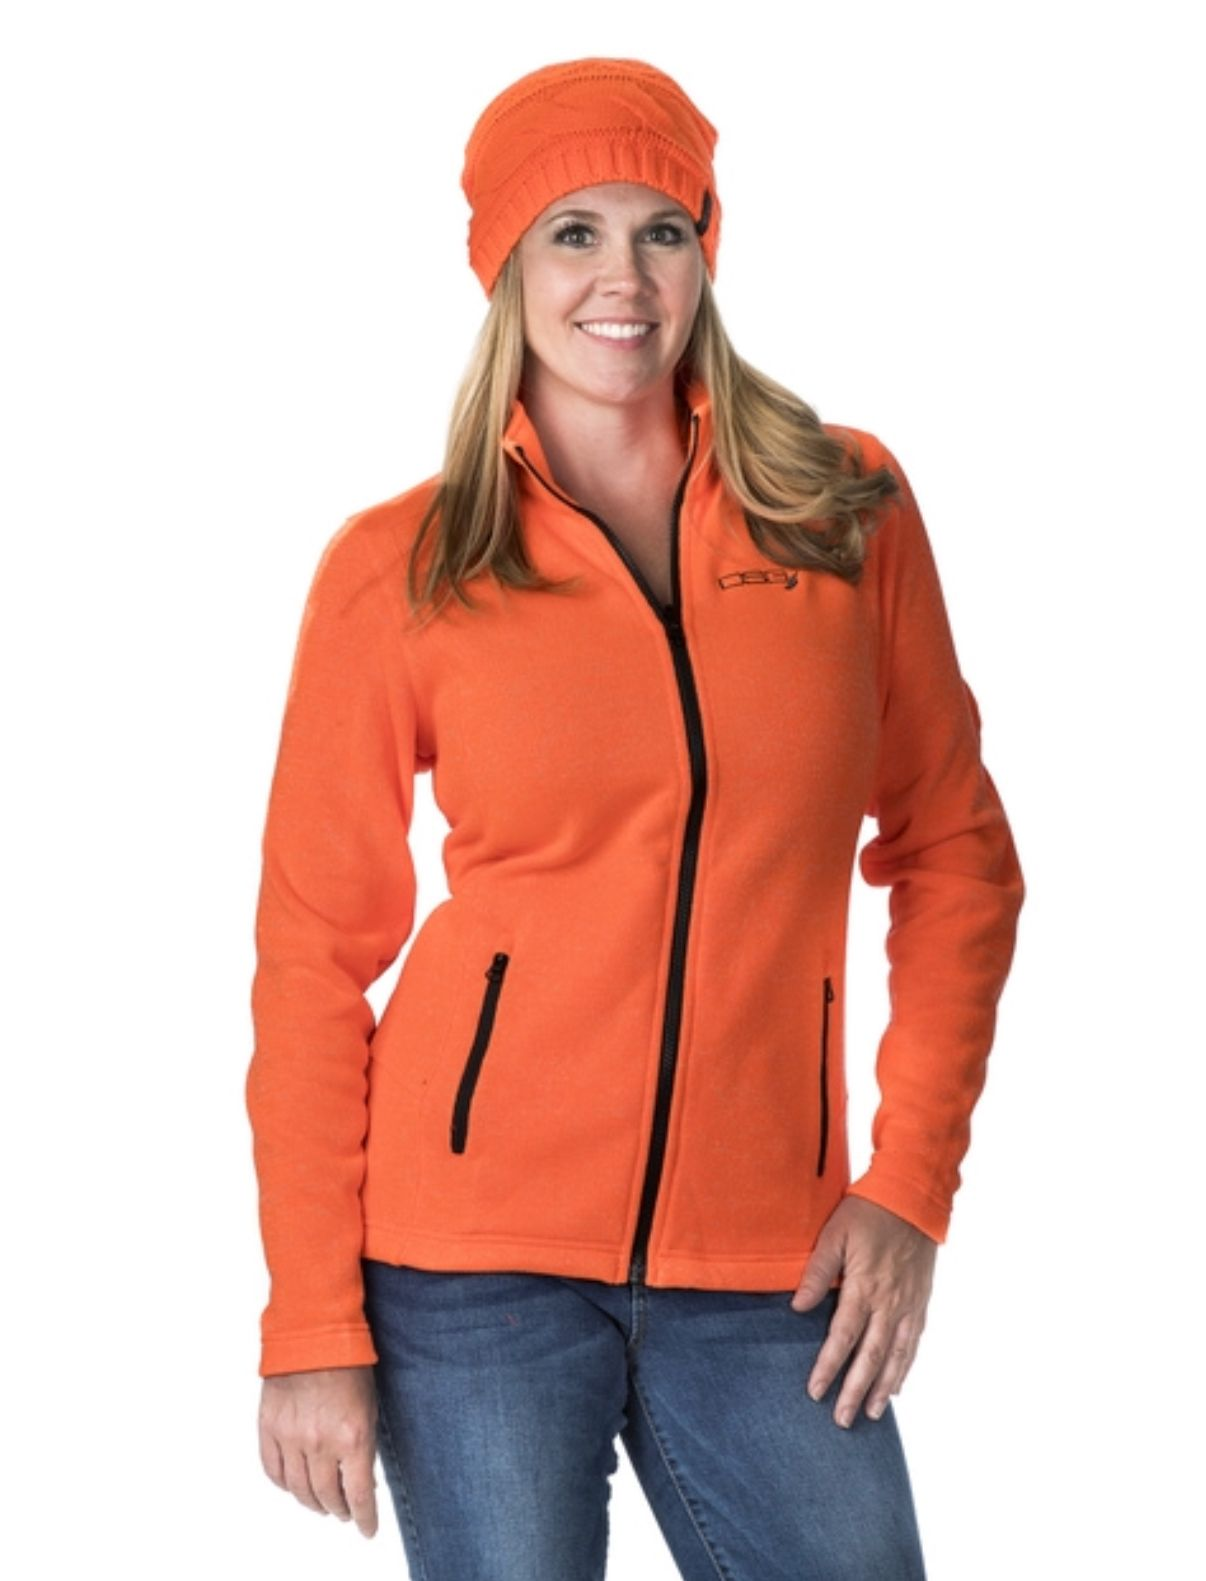 a80458ca66a6f Kylie 3-in-1 Hunting Jacket - Removable Fleece Liner - Can Be Worn 3 ...